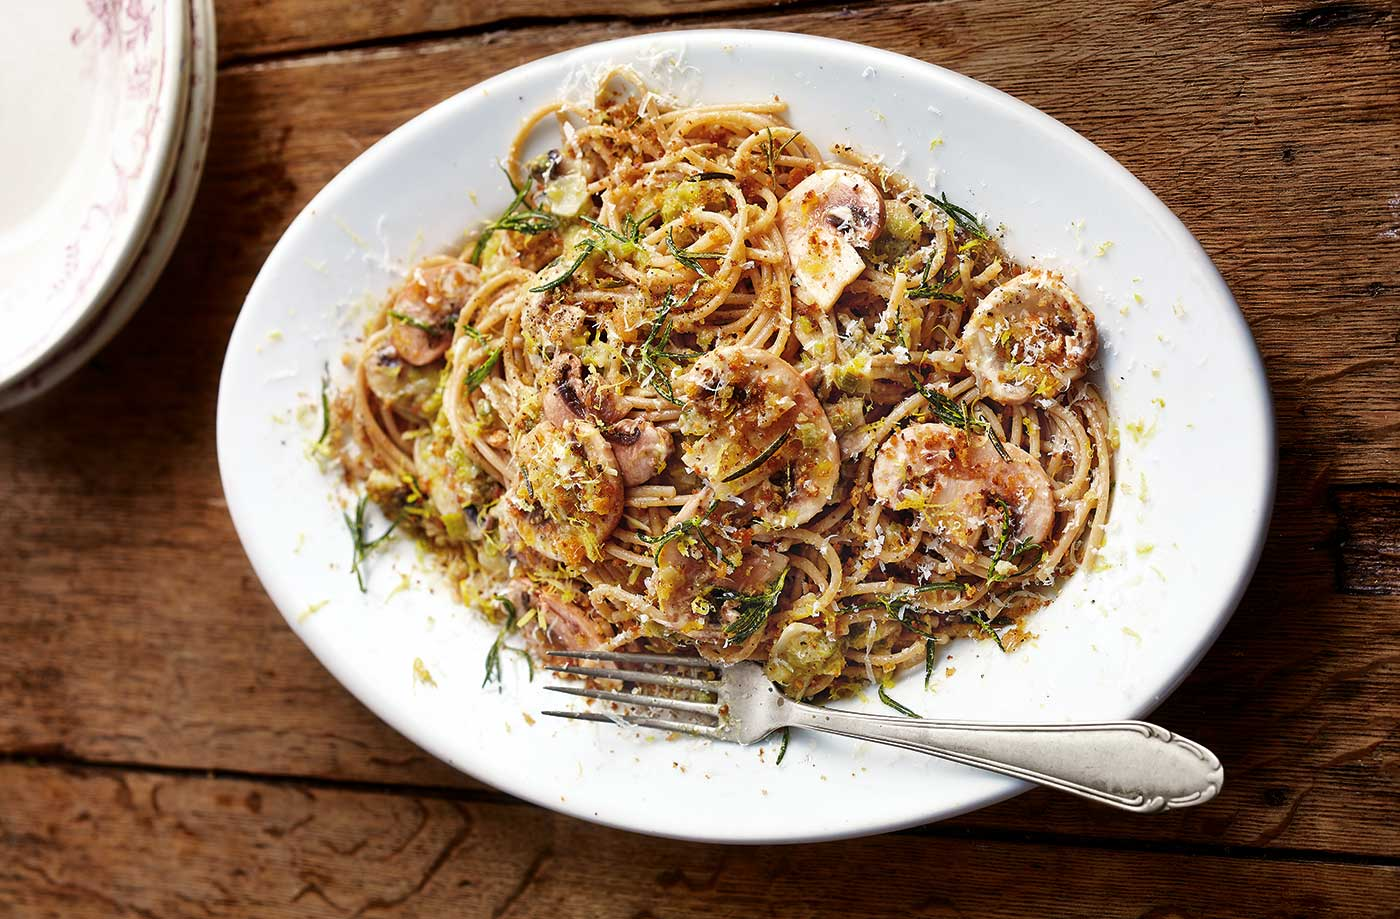 Sweet leek and mushroom wholewheat spaghetti recipe